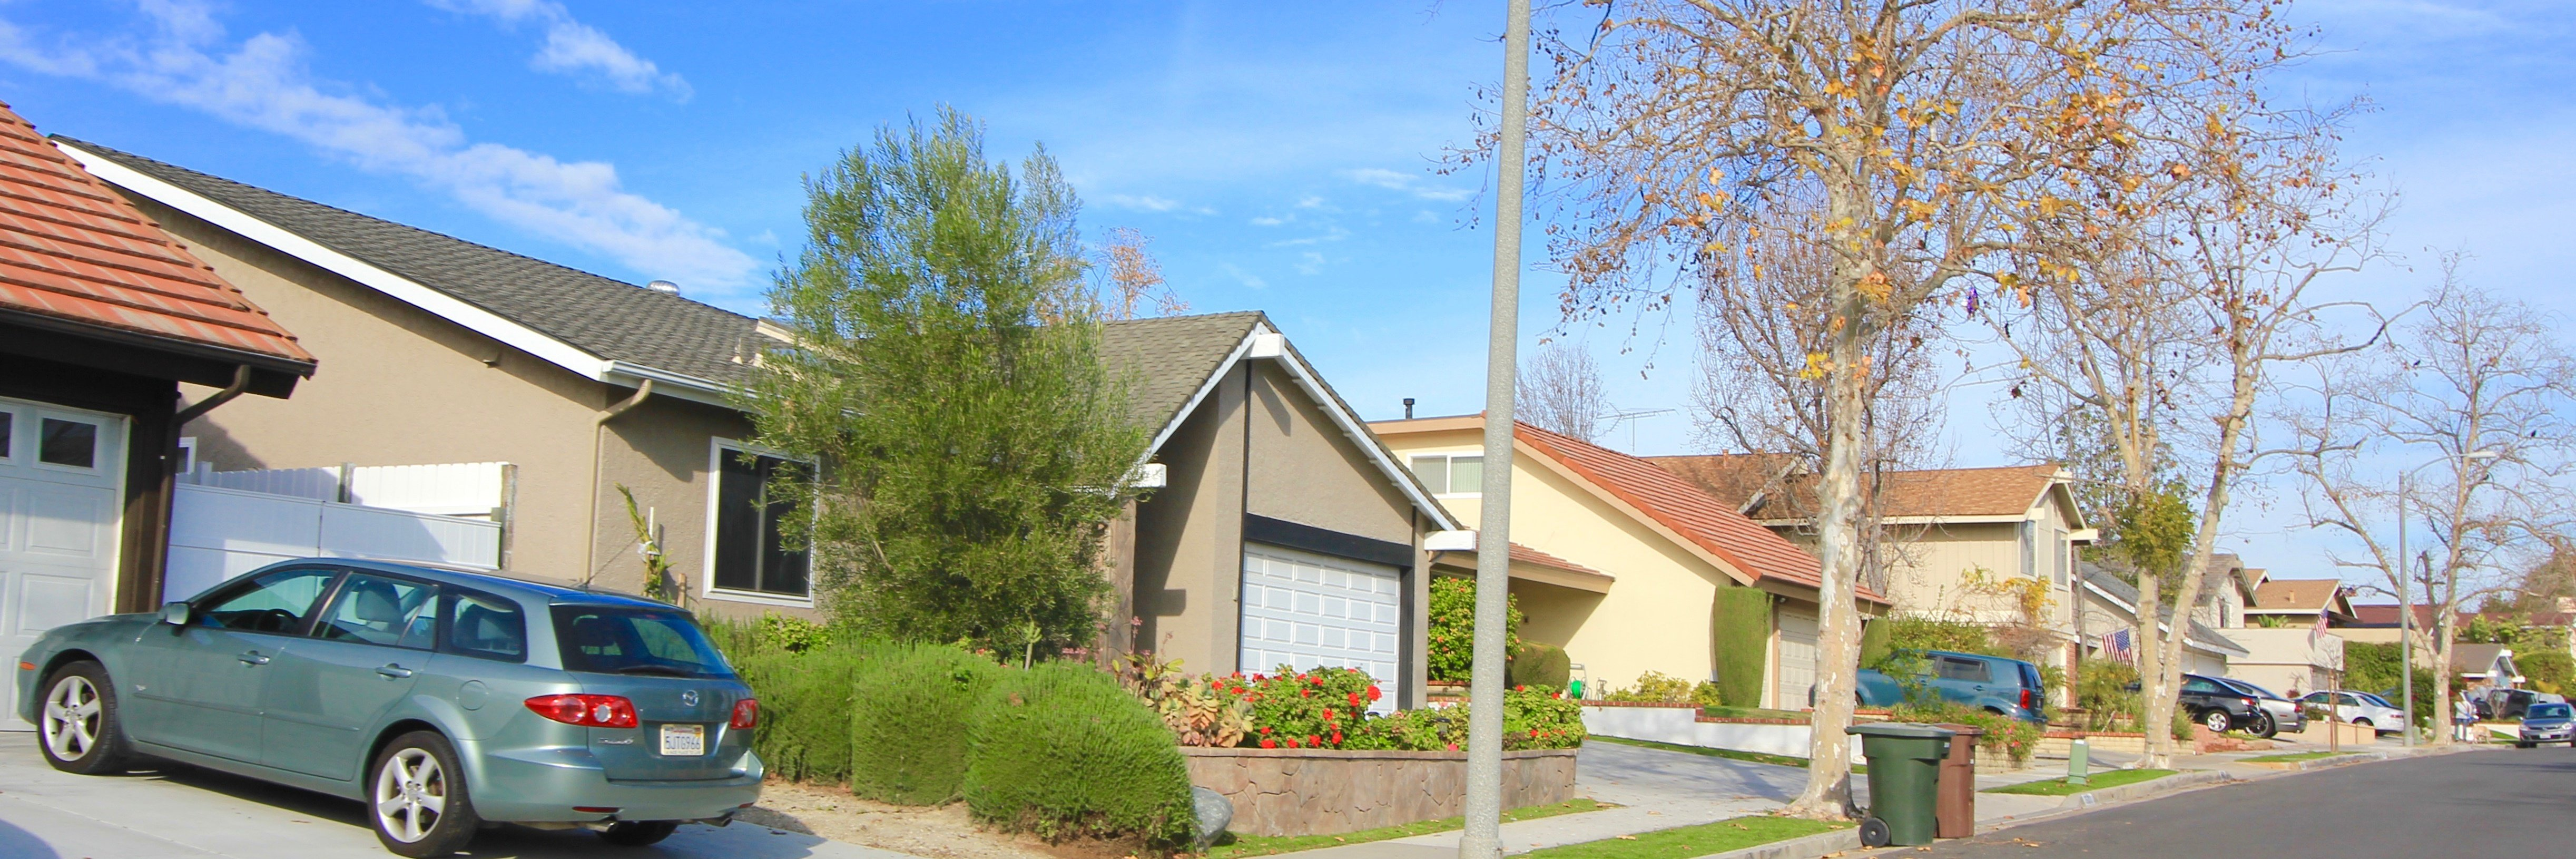 Capistrano Highlands is a community located in the city of Laguna Hills, CA